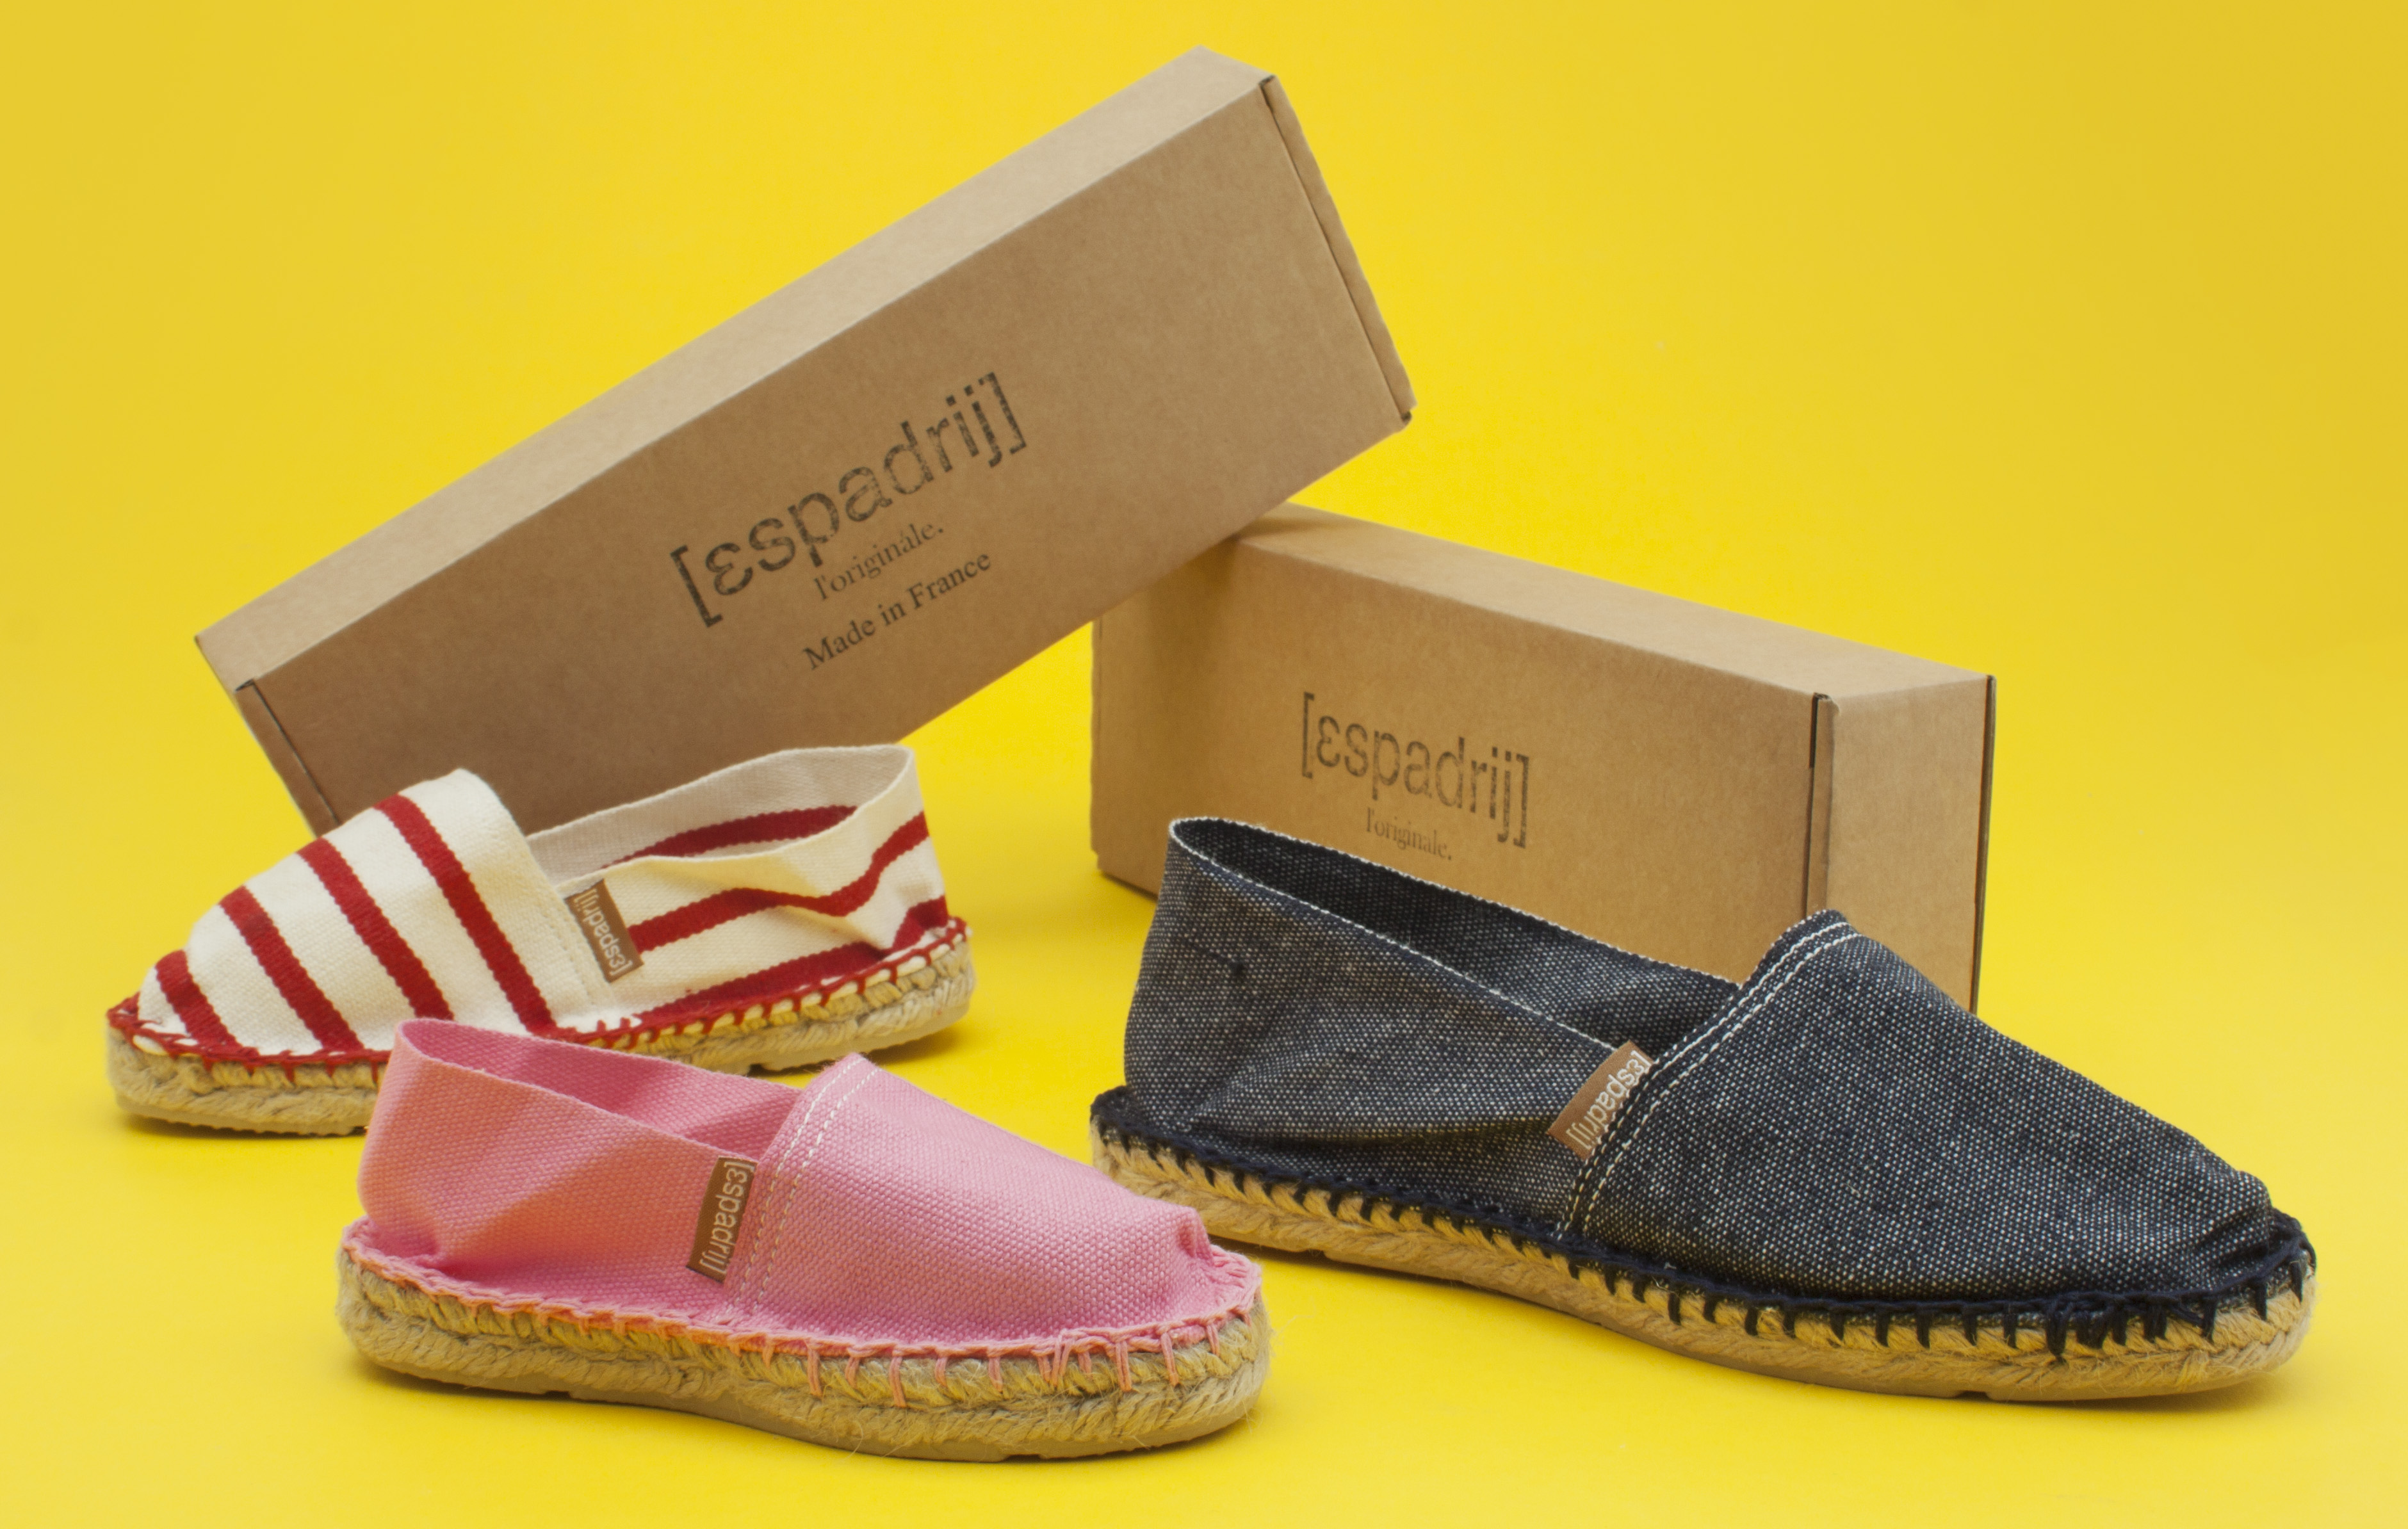 pink-white-and-red-striped-and-navy-canvas-kids-espadrilles-from-french-brand-espadrij-loriginale-out-of-boxes